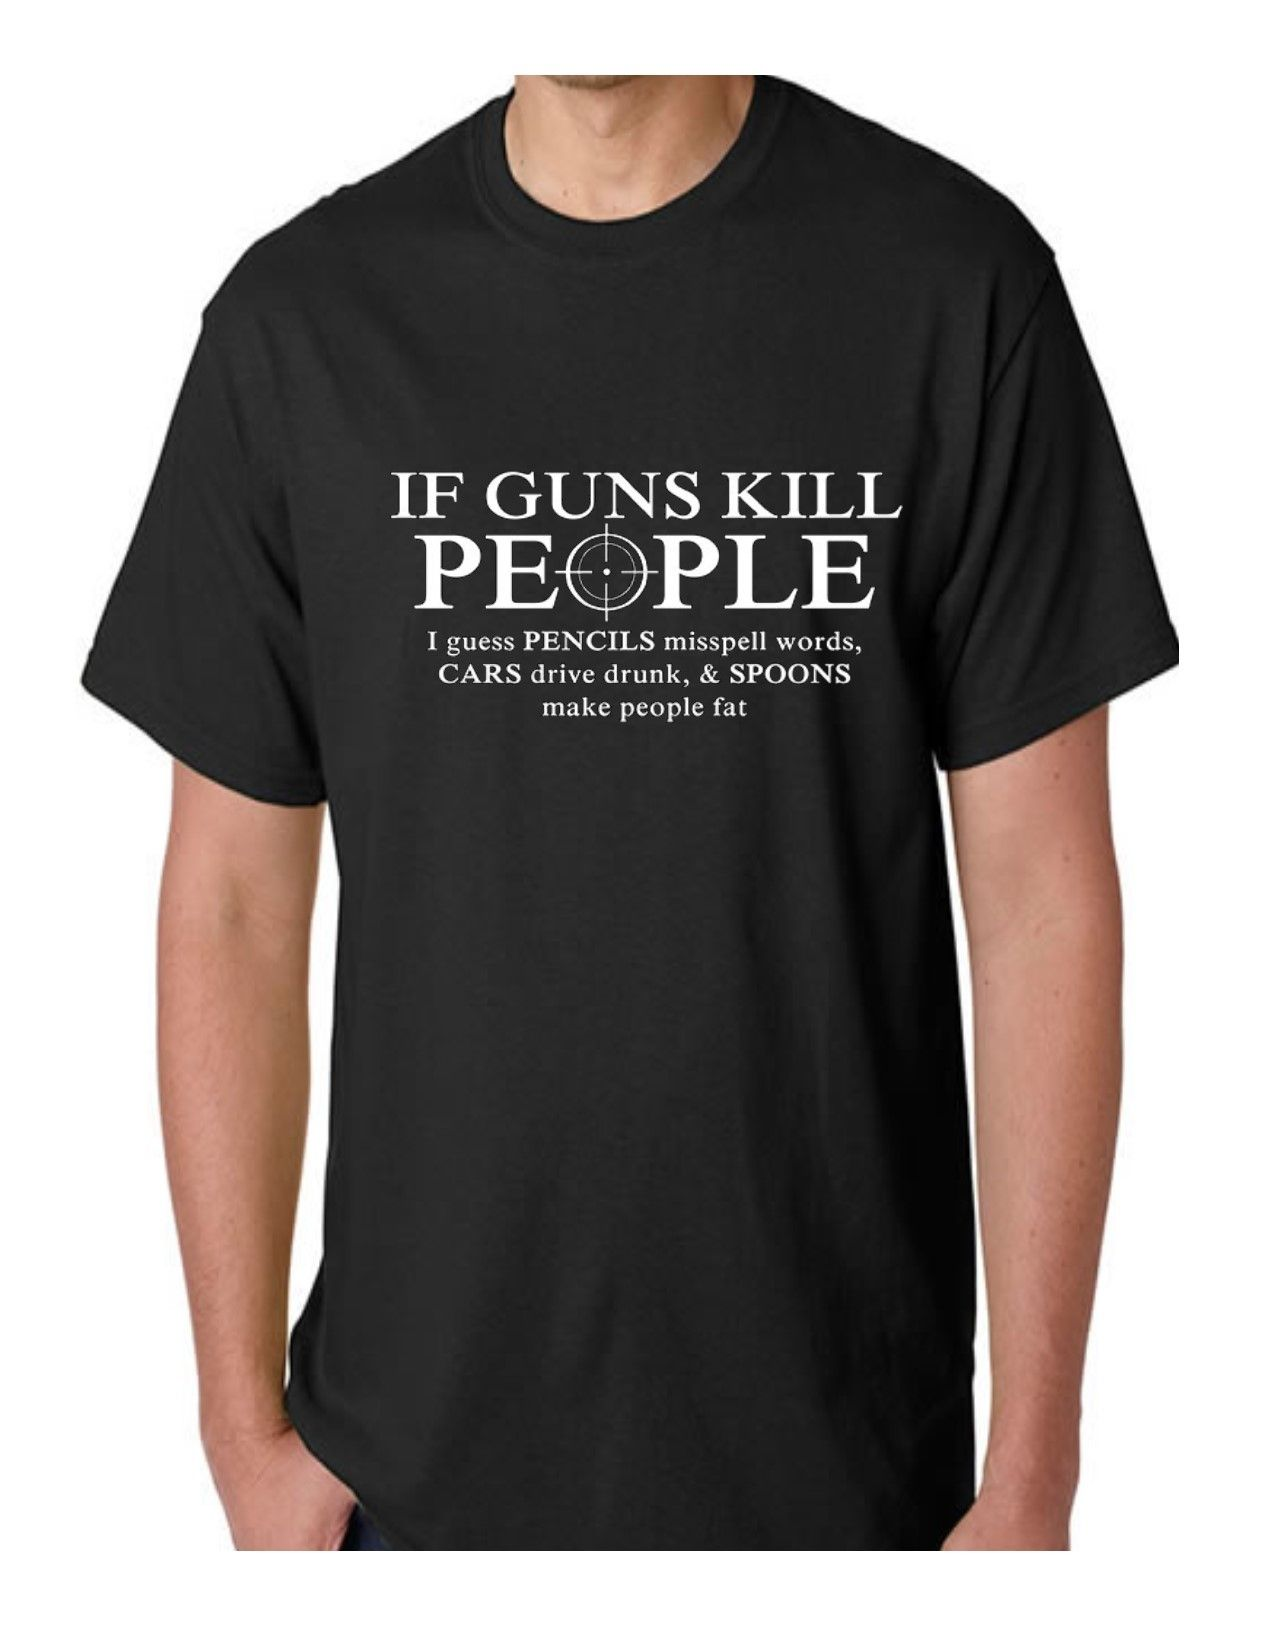 Pin by Wright on Shop Our Pins! 2nd amendment t